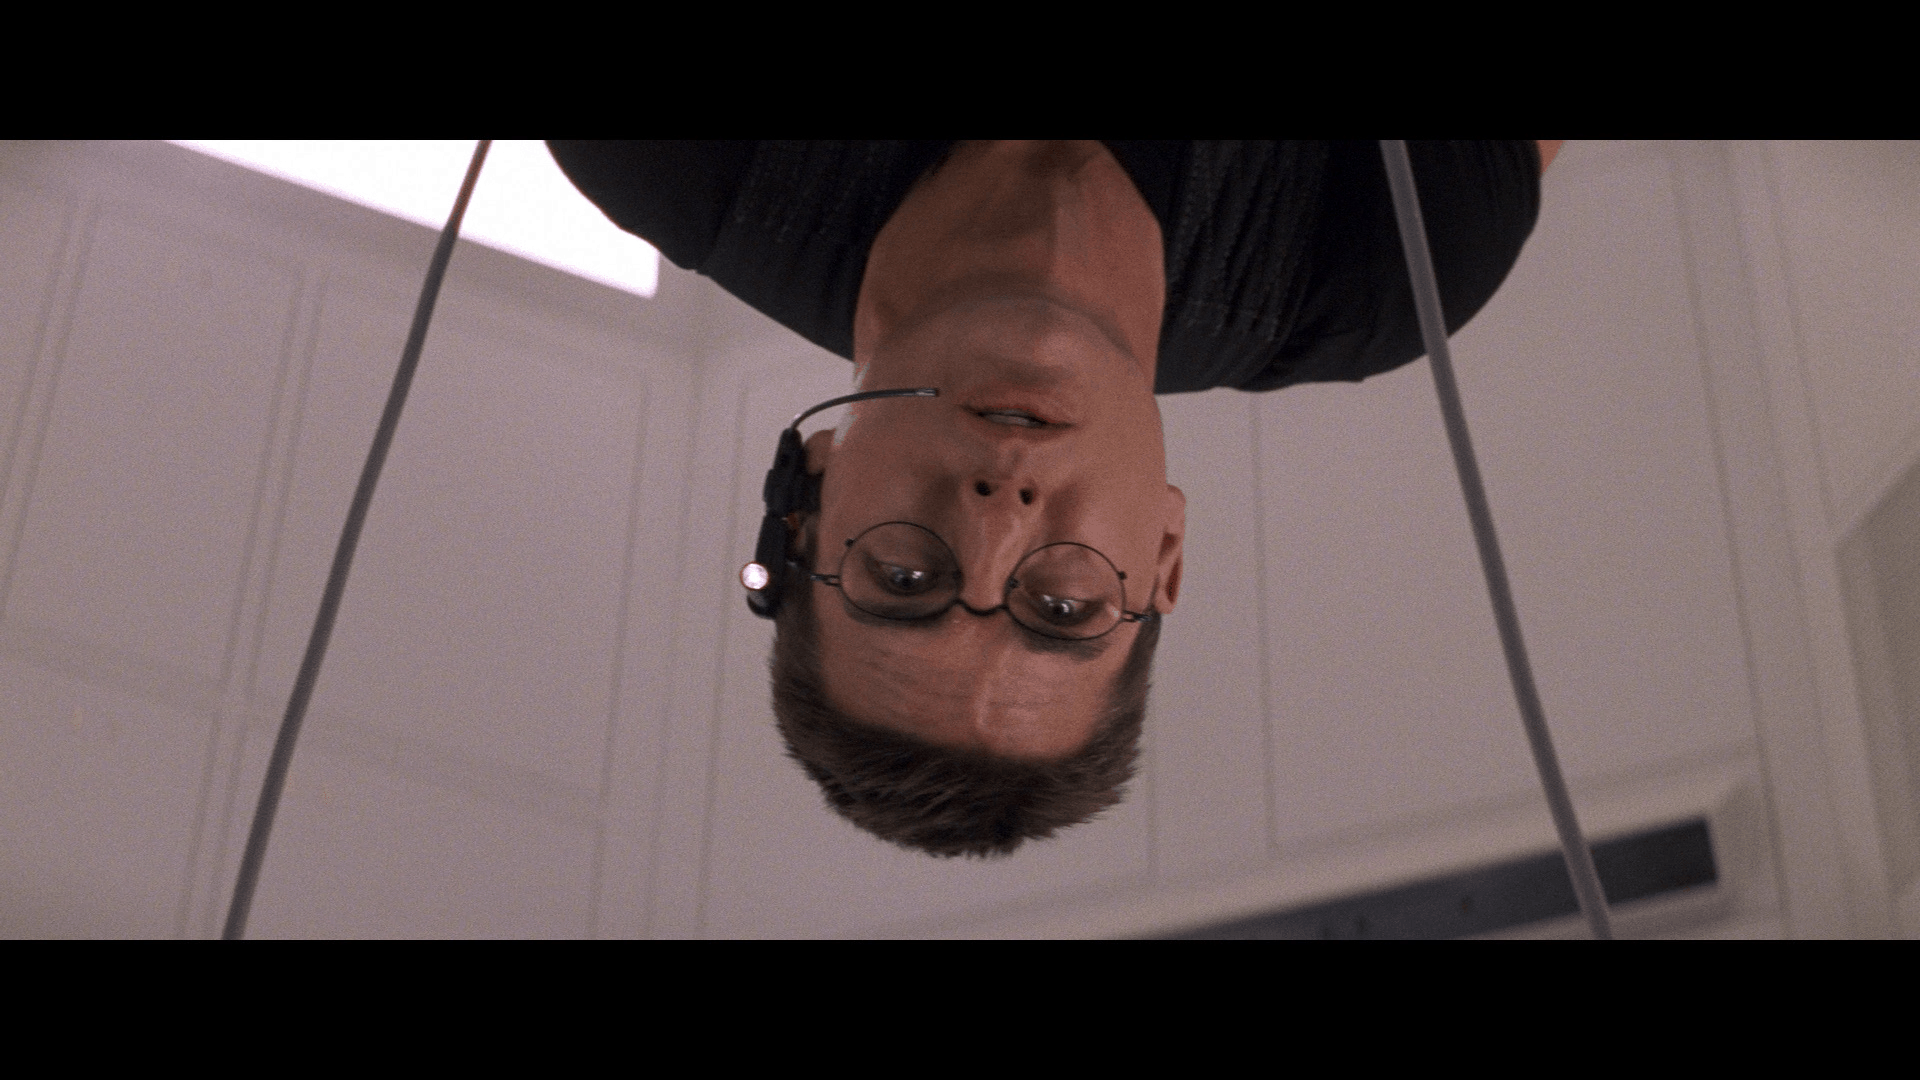 Mission Impossible turns 25 with an improved Blu-ray [Review] 3